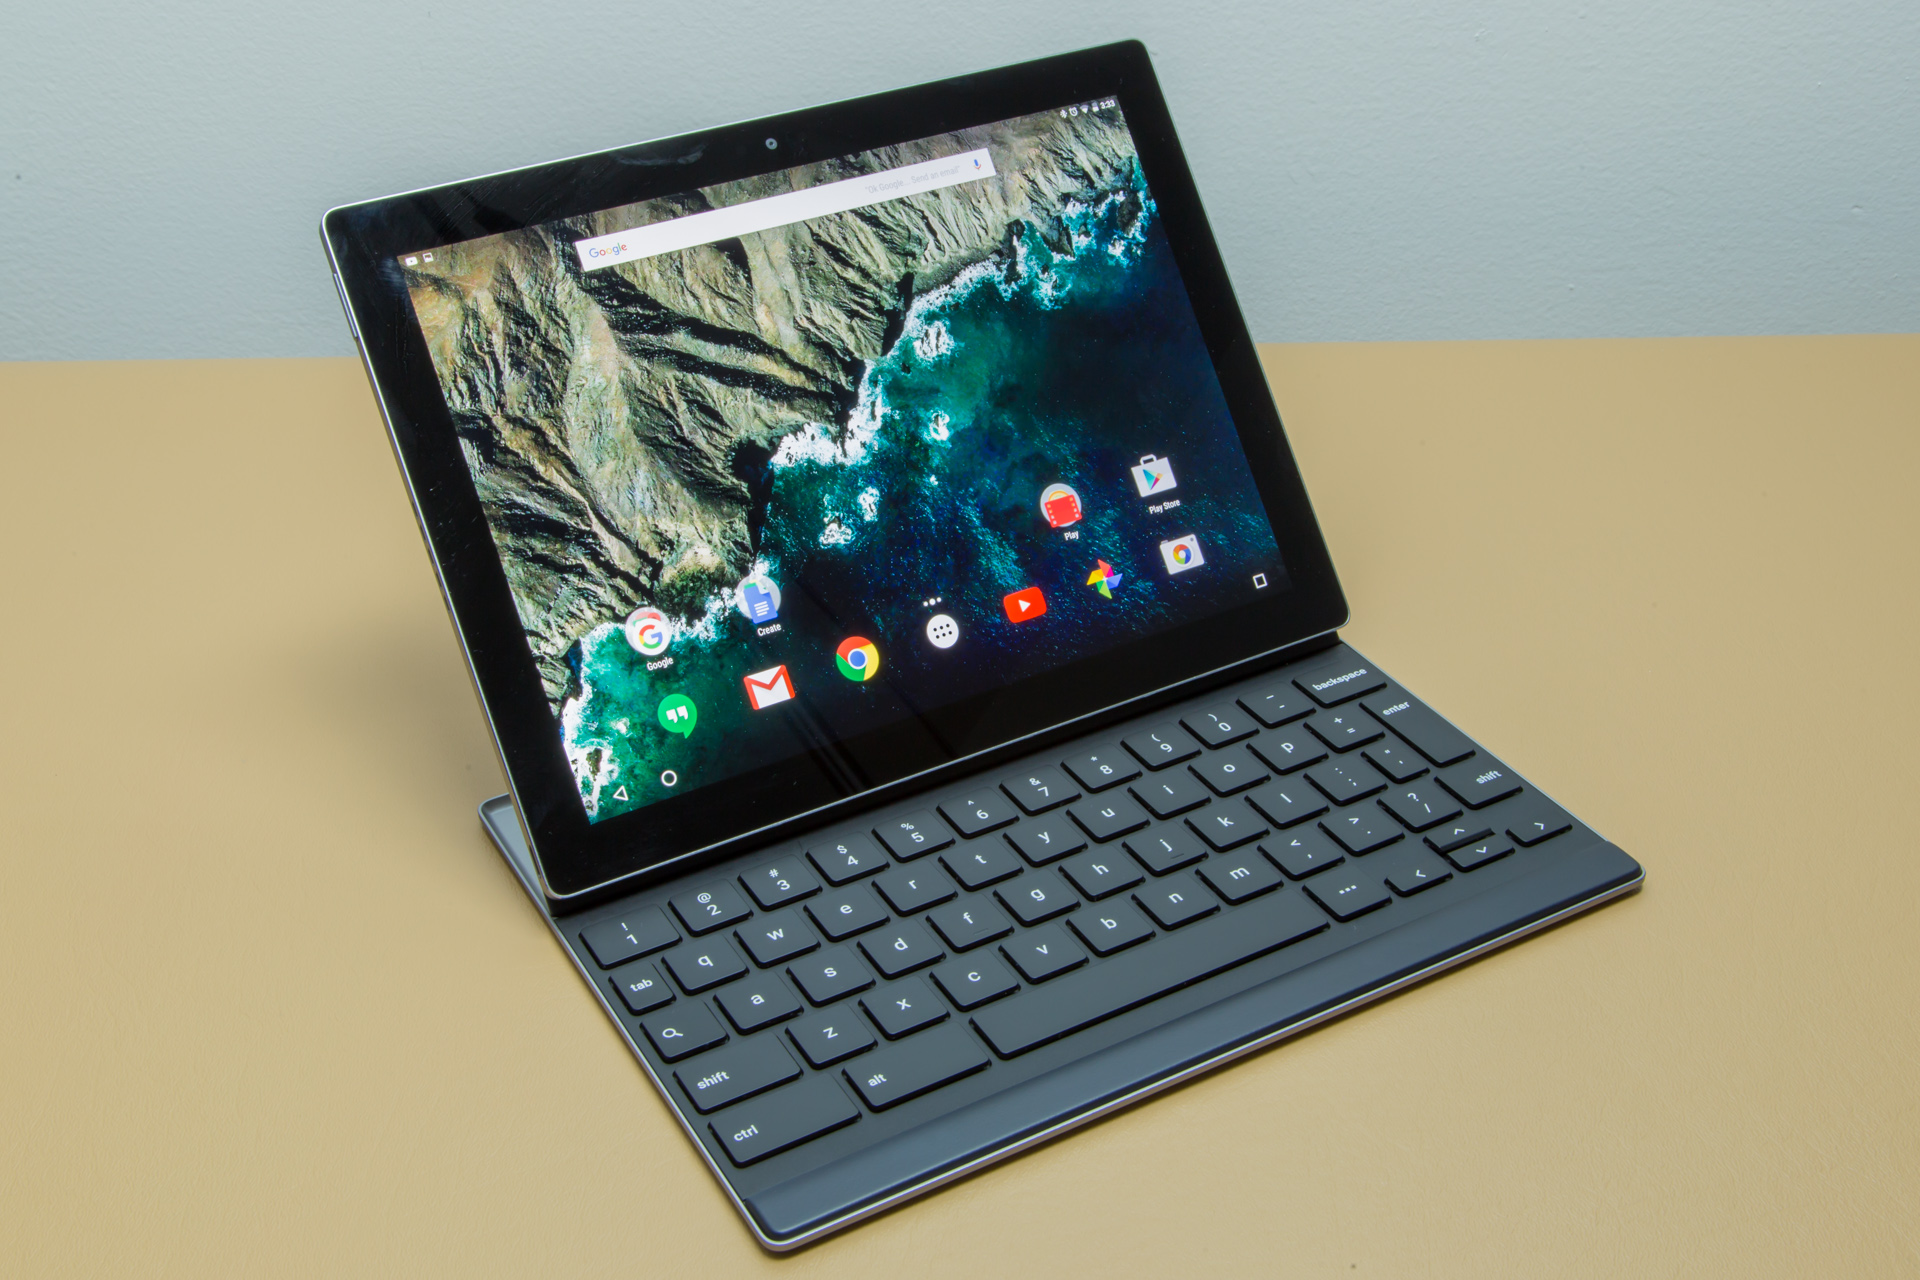 Besides the name, Pixel phones have little in common with Pixel laptops and tablets.